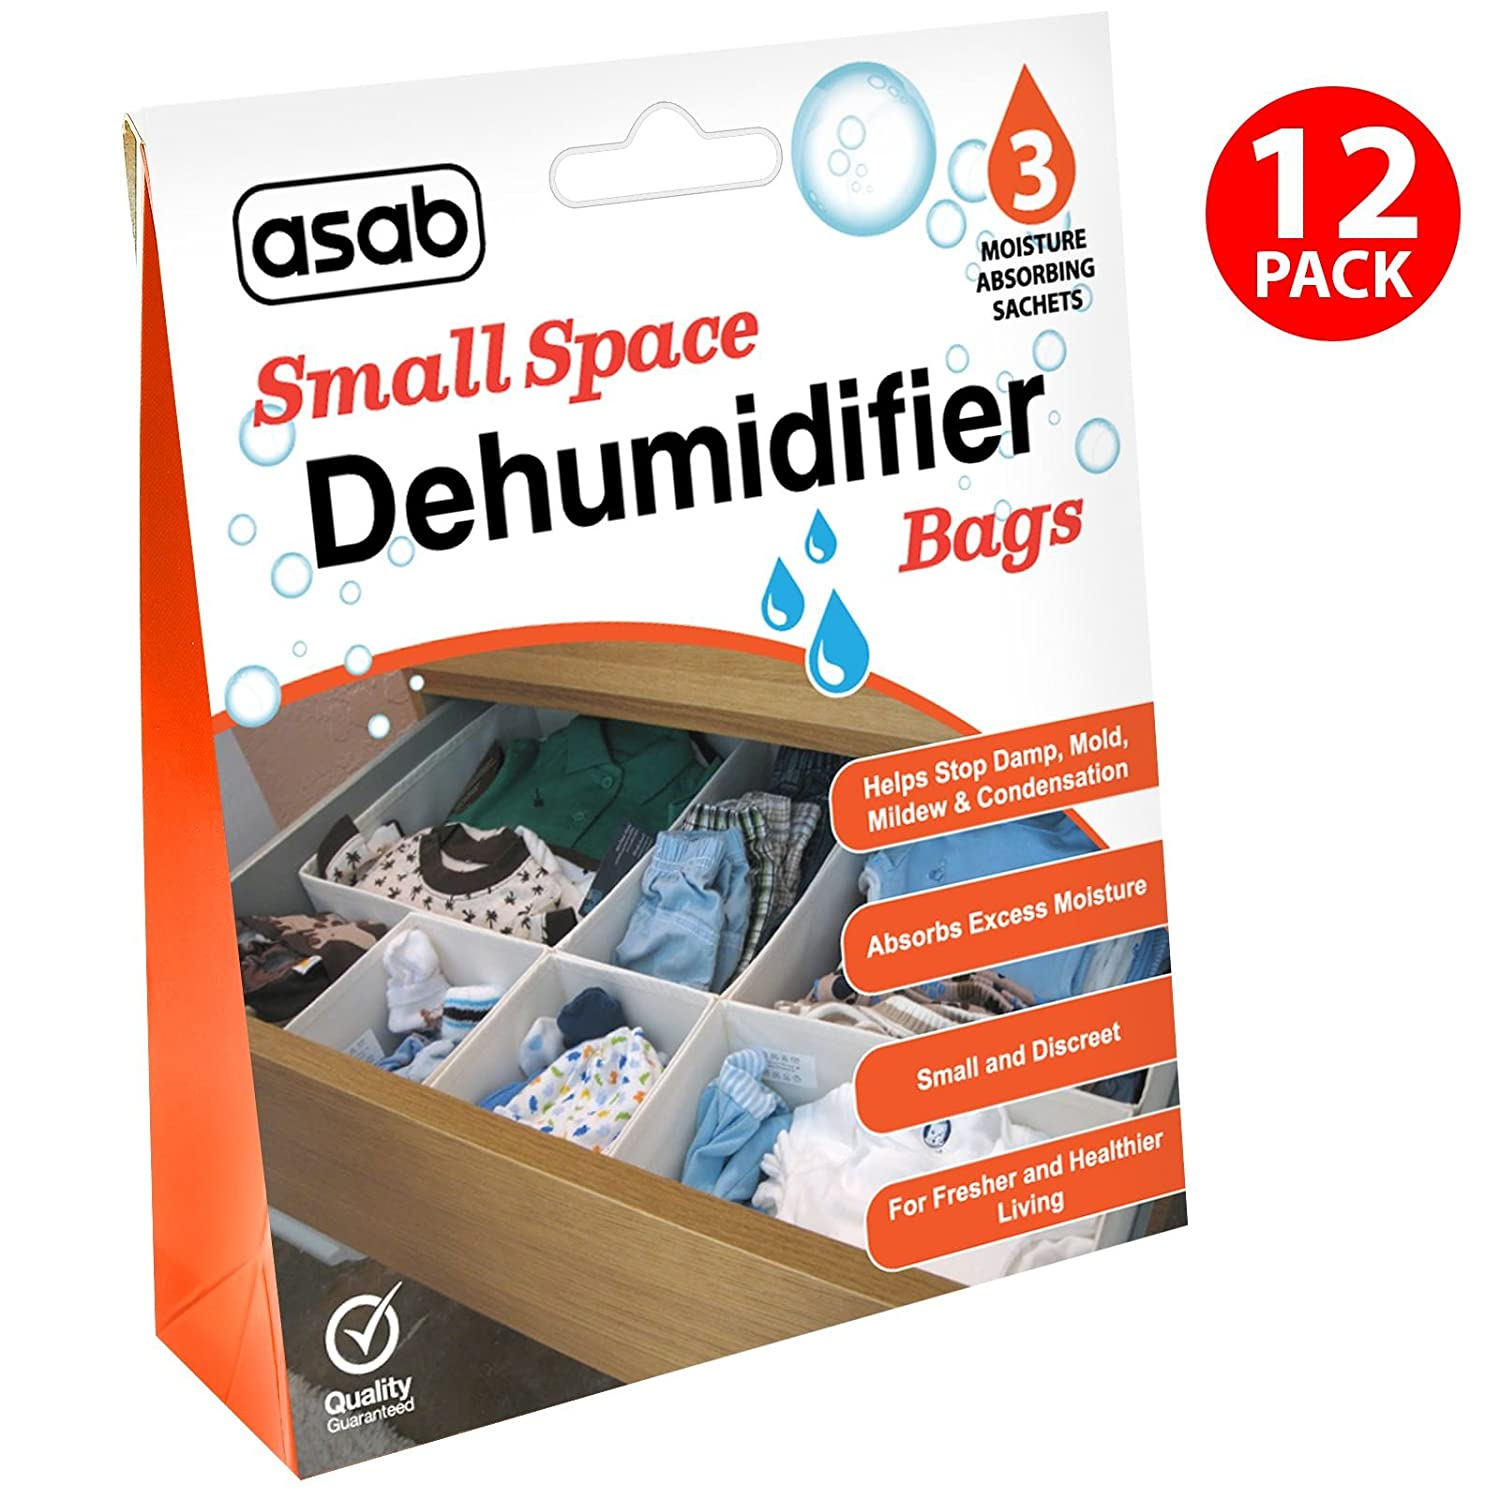 Drawers Dehumidifying Sachets ASAB Wardrobe Dehumidifier Bags 1 Pack Wet Remover Humidity Catcher Damp Absorber with Crystals Small Spaces Moisture Trap 3 Bags